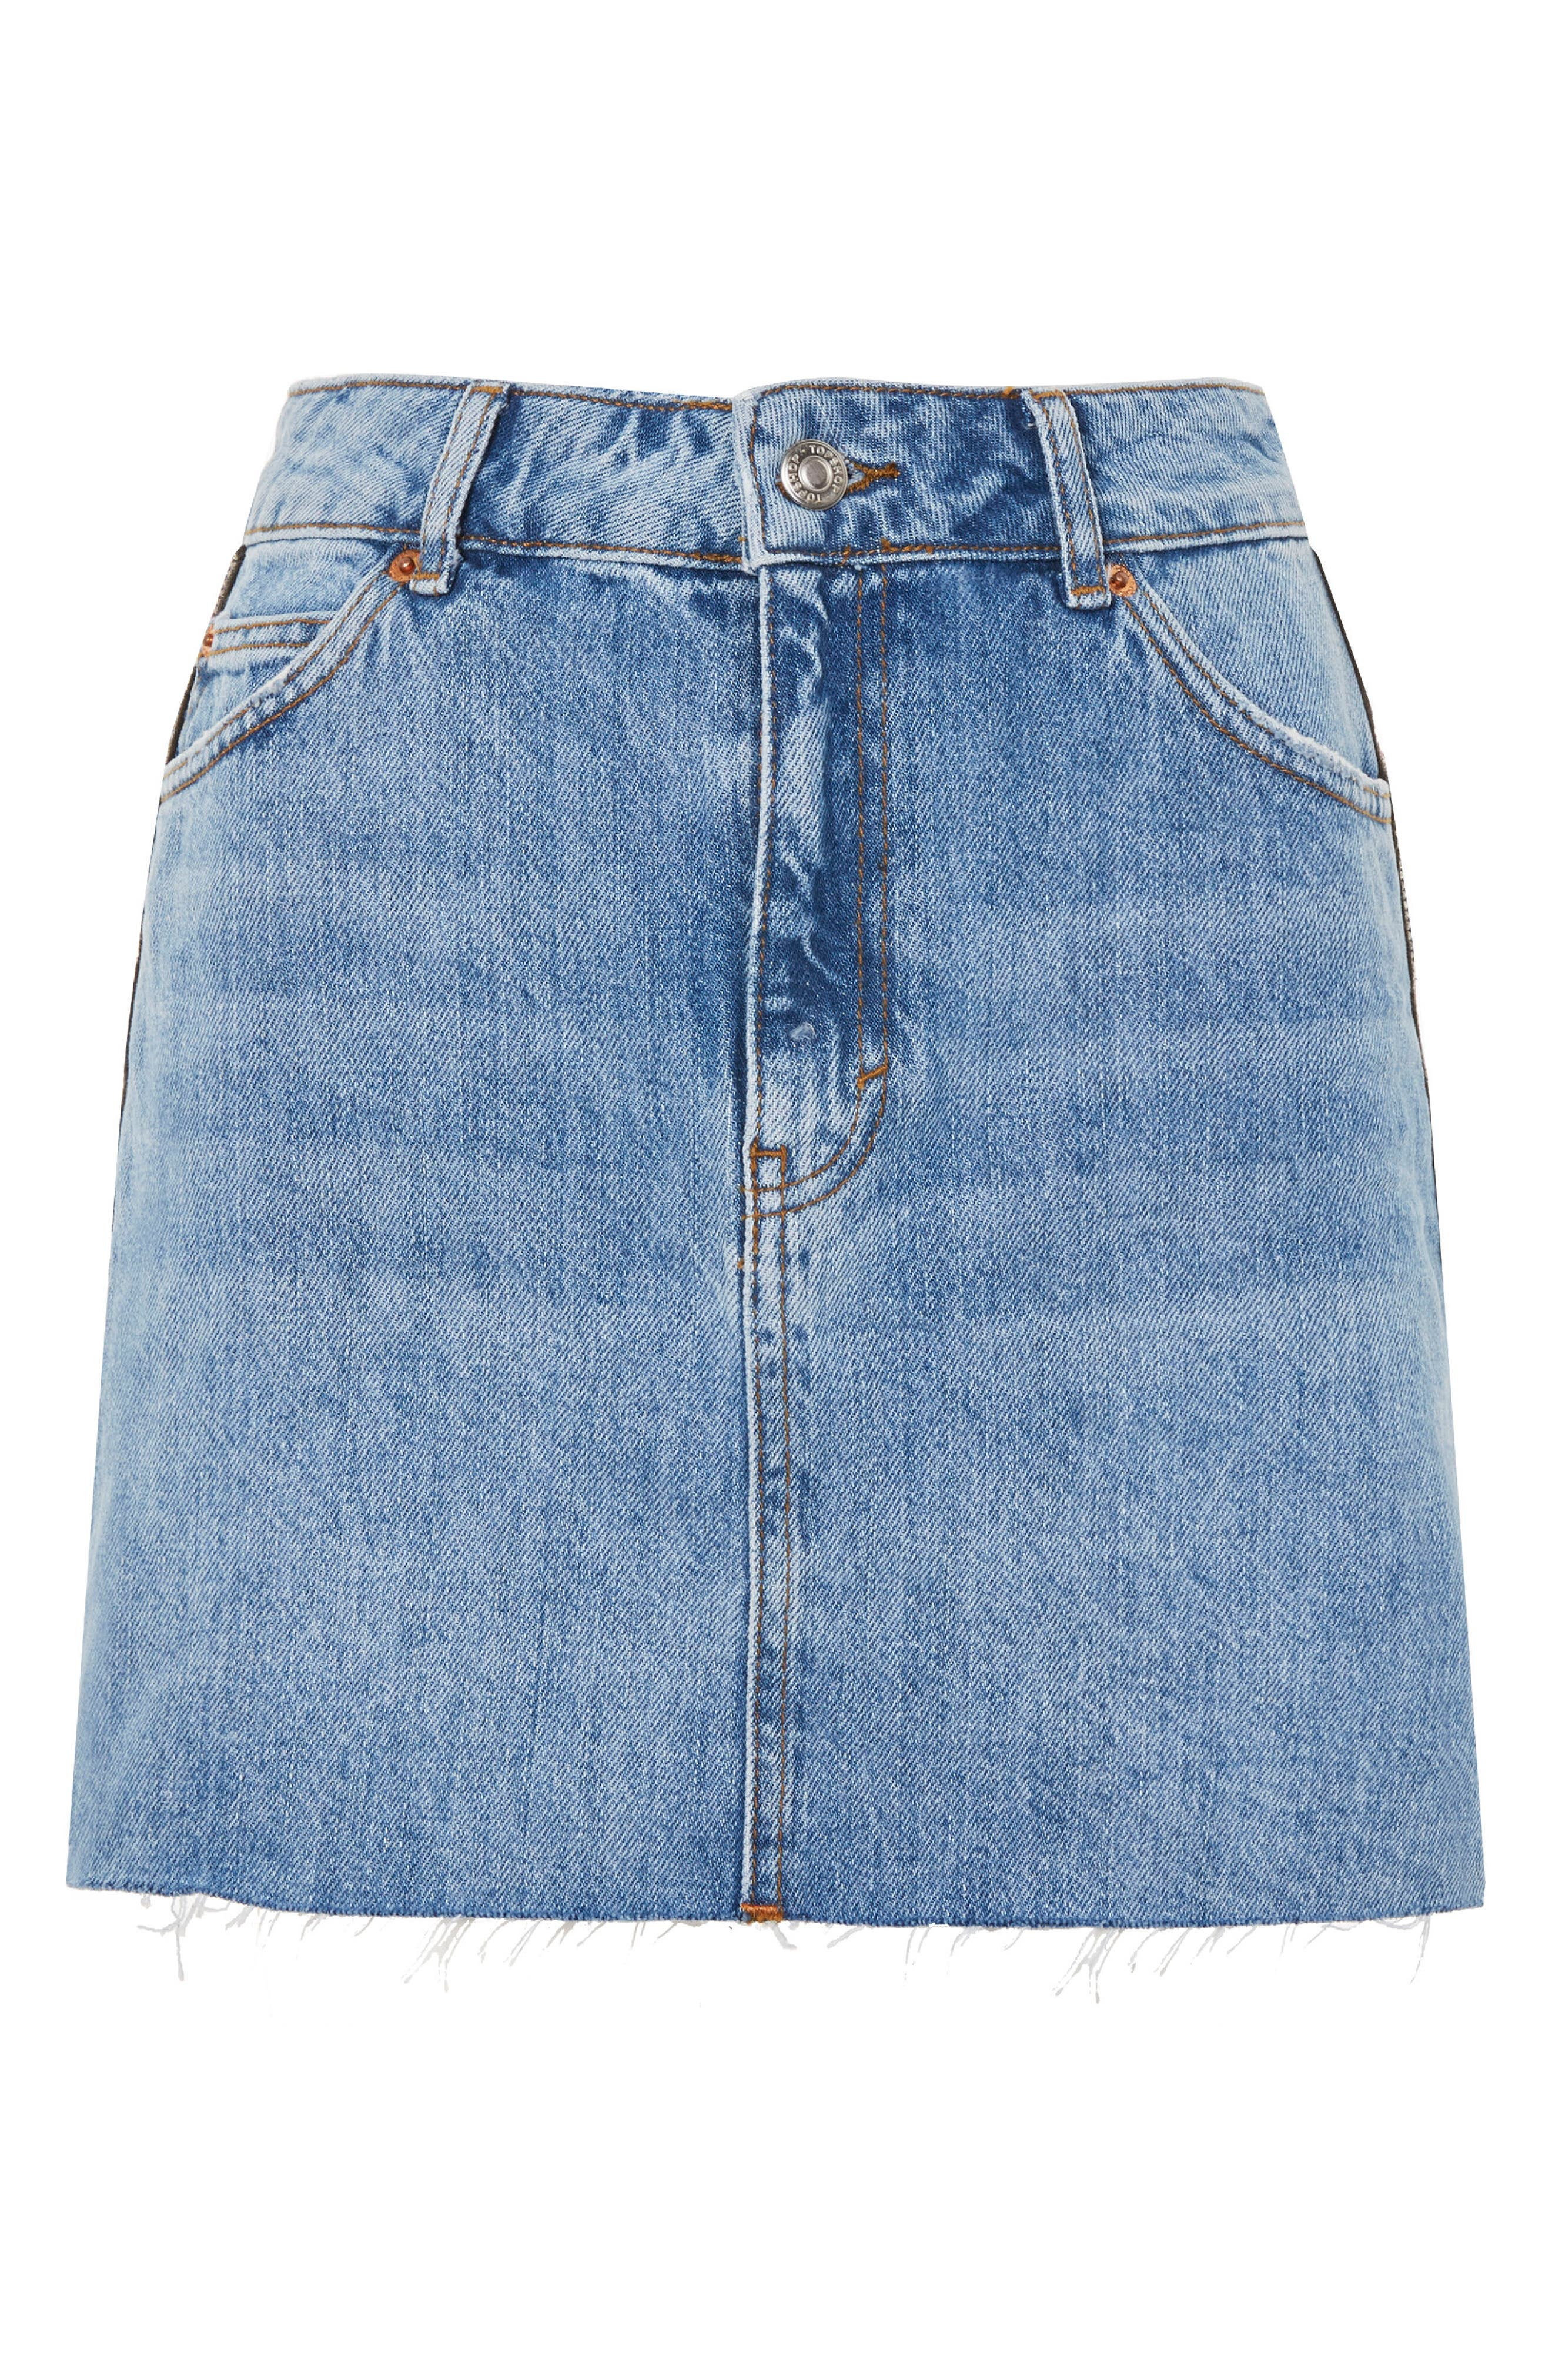 Diamante Stripe Denim Skirt,                             Alternate thumbnail 3, color,                             Mid Denim